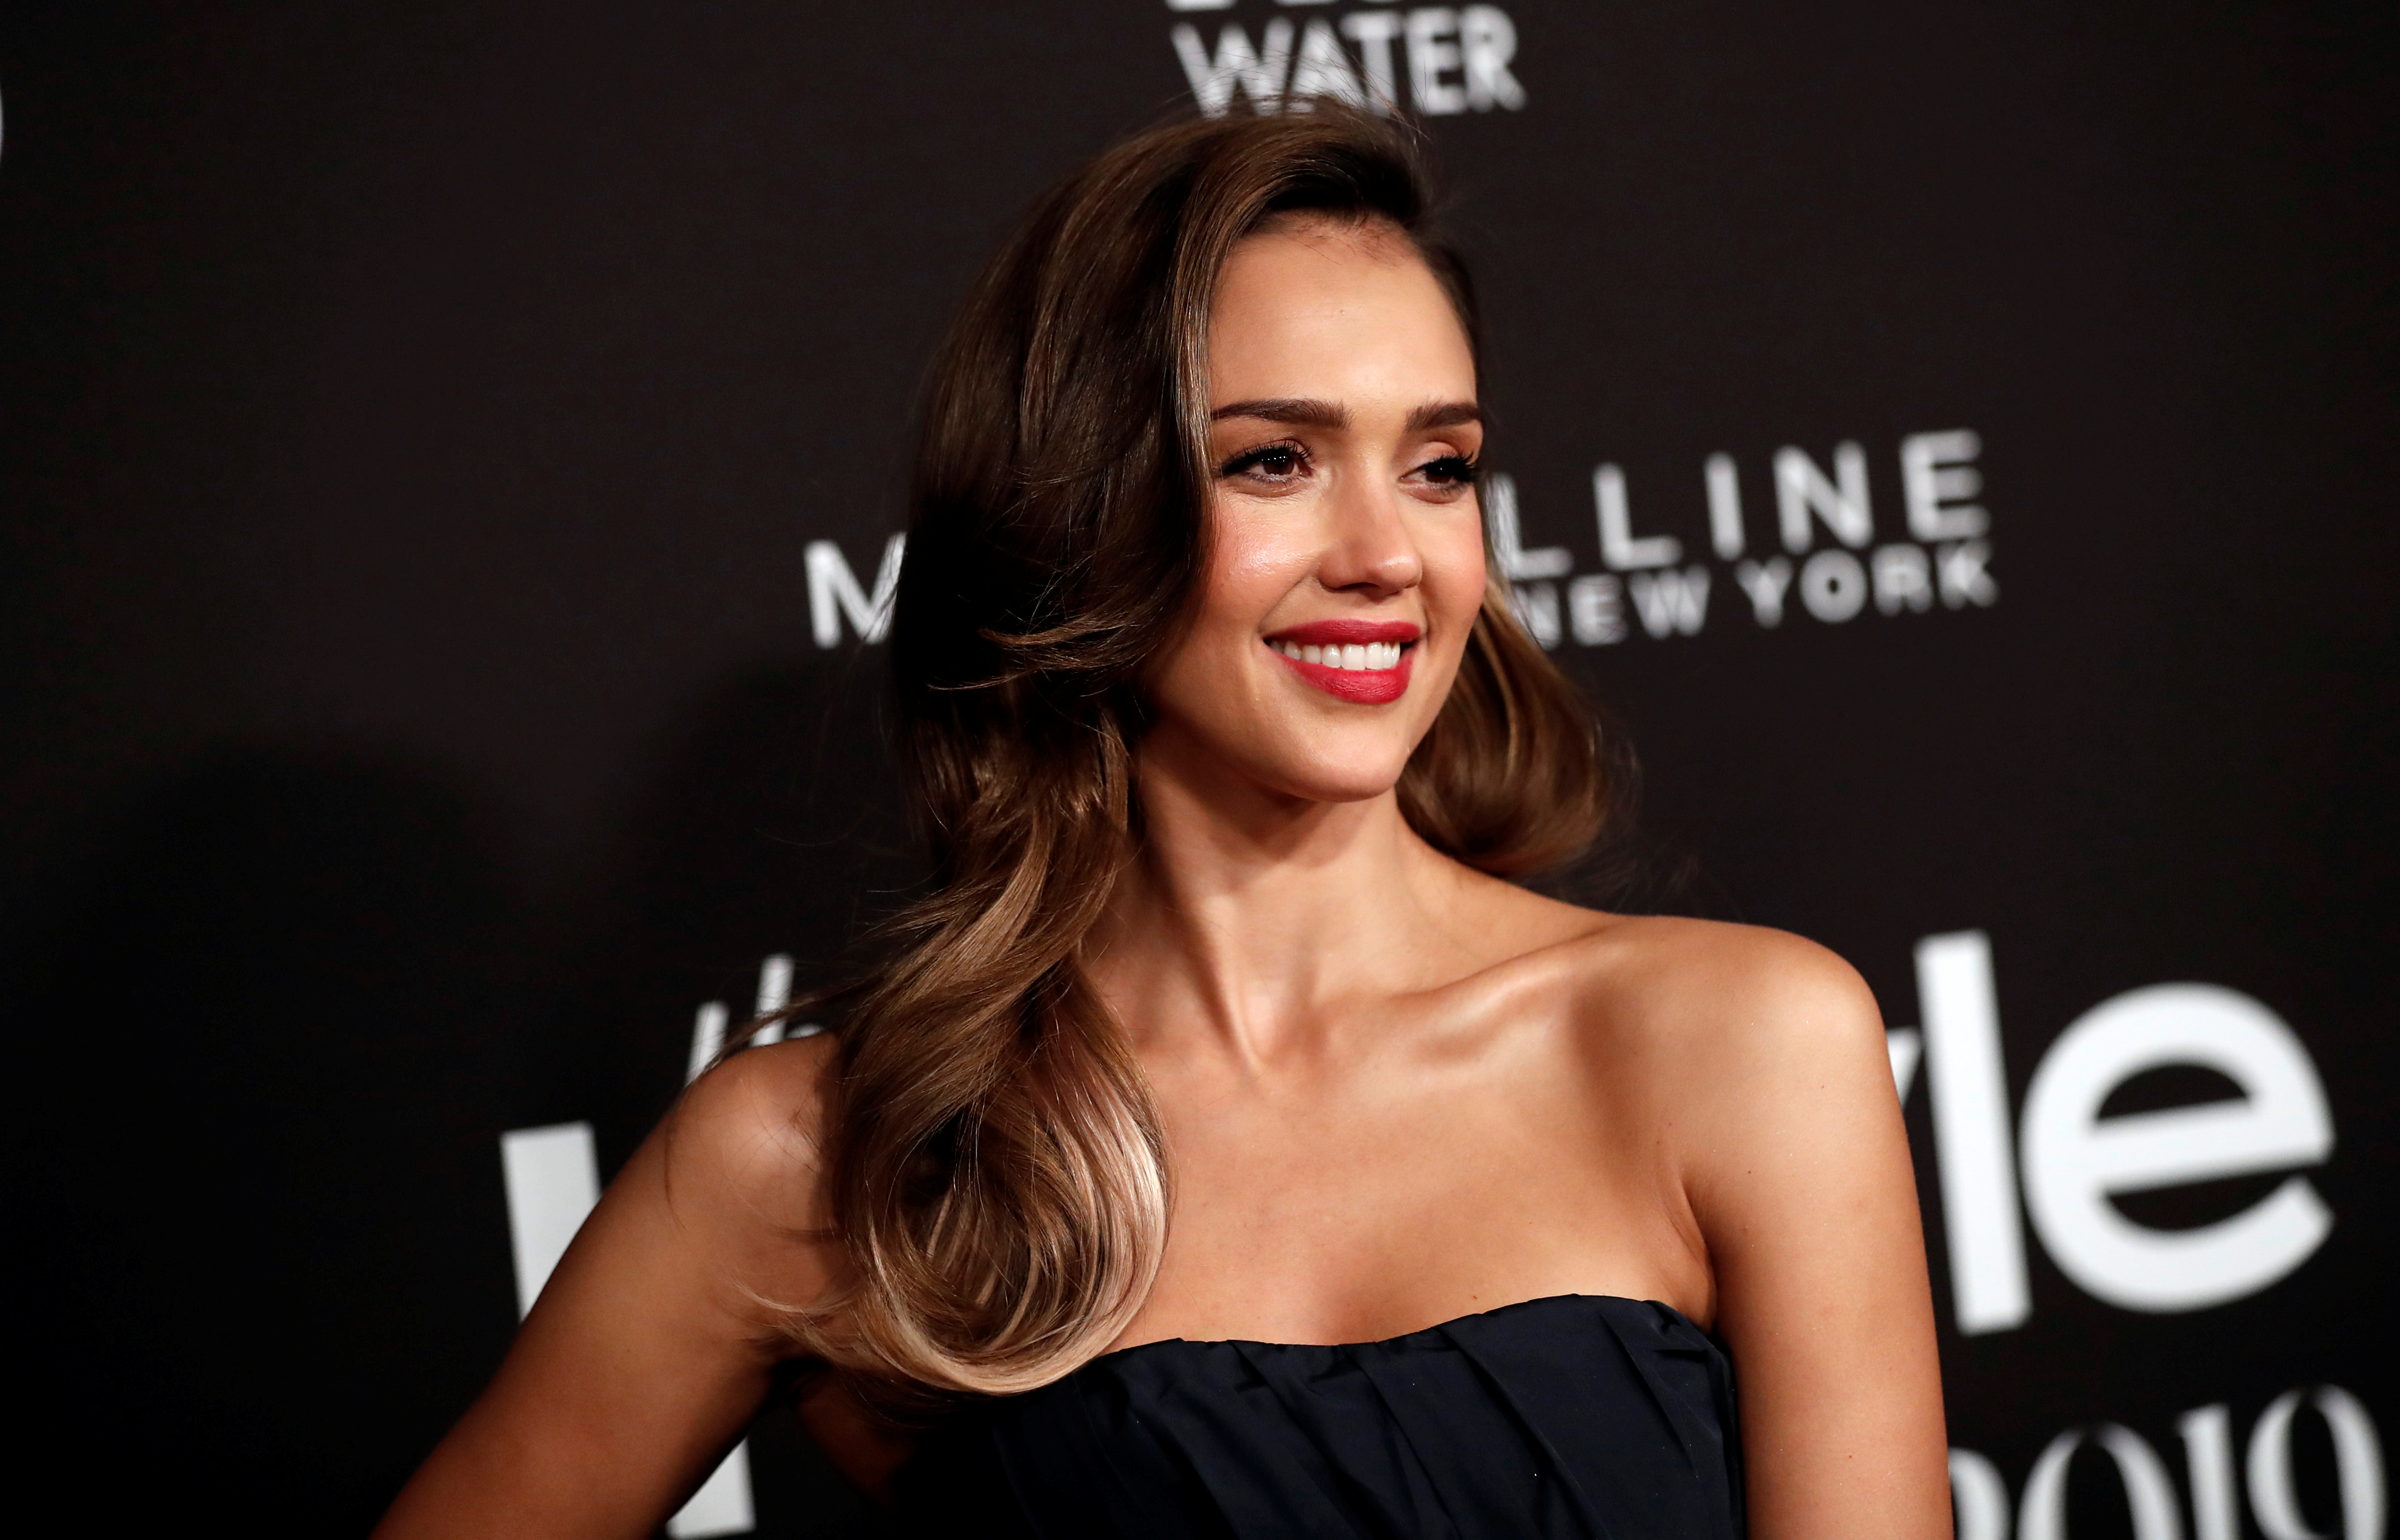 Actor Jessica Alba poses at the Fifth Annual InStyle Awards at Getty Center in Los Angeles, California, U.S., October 21, 2019. REUTERS/Mario Anzuoni